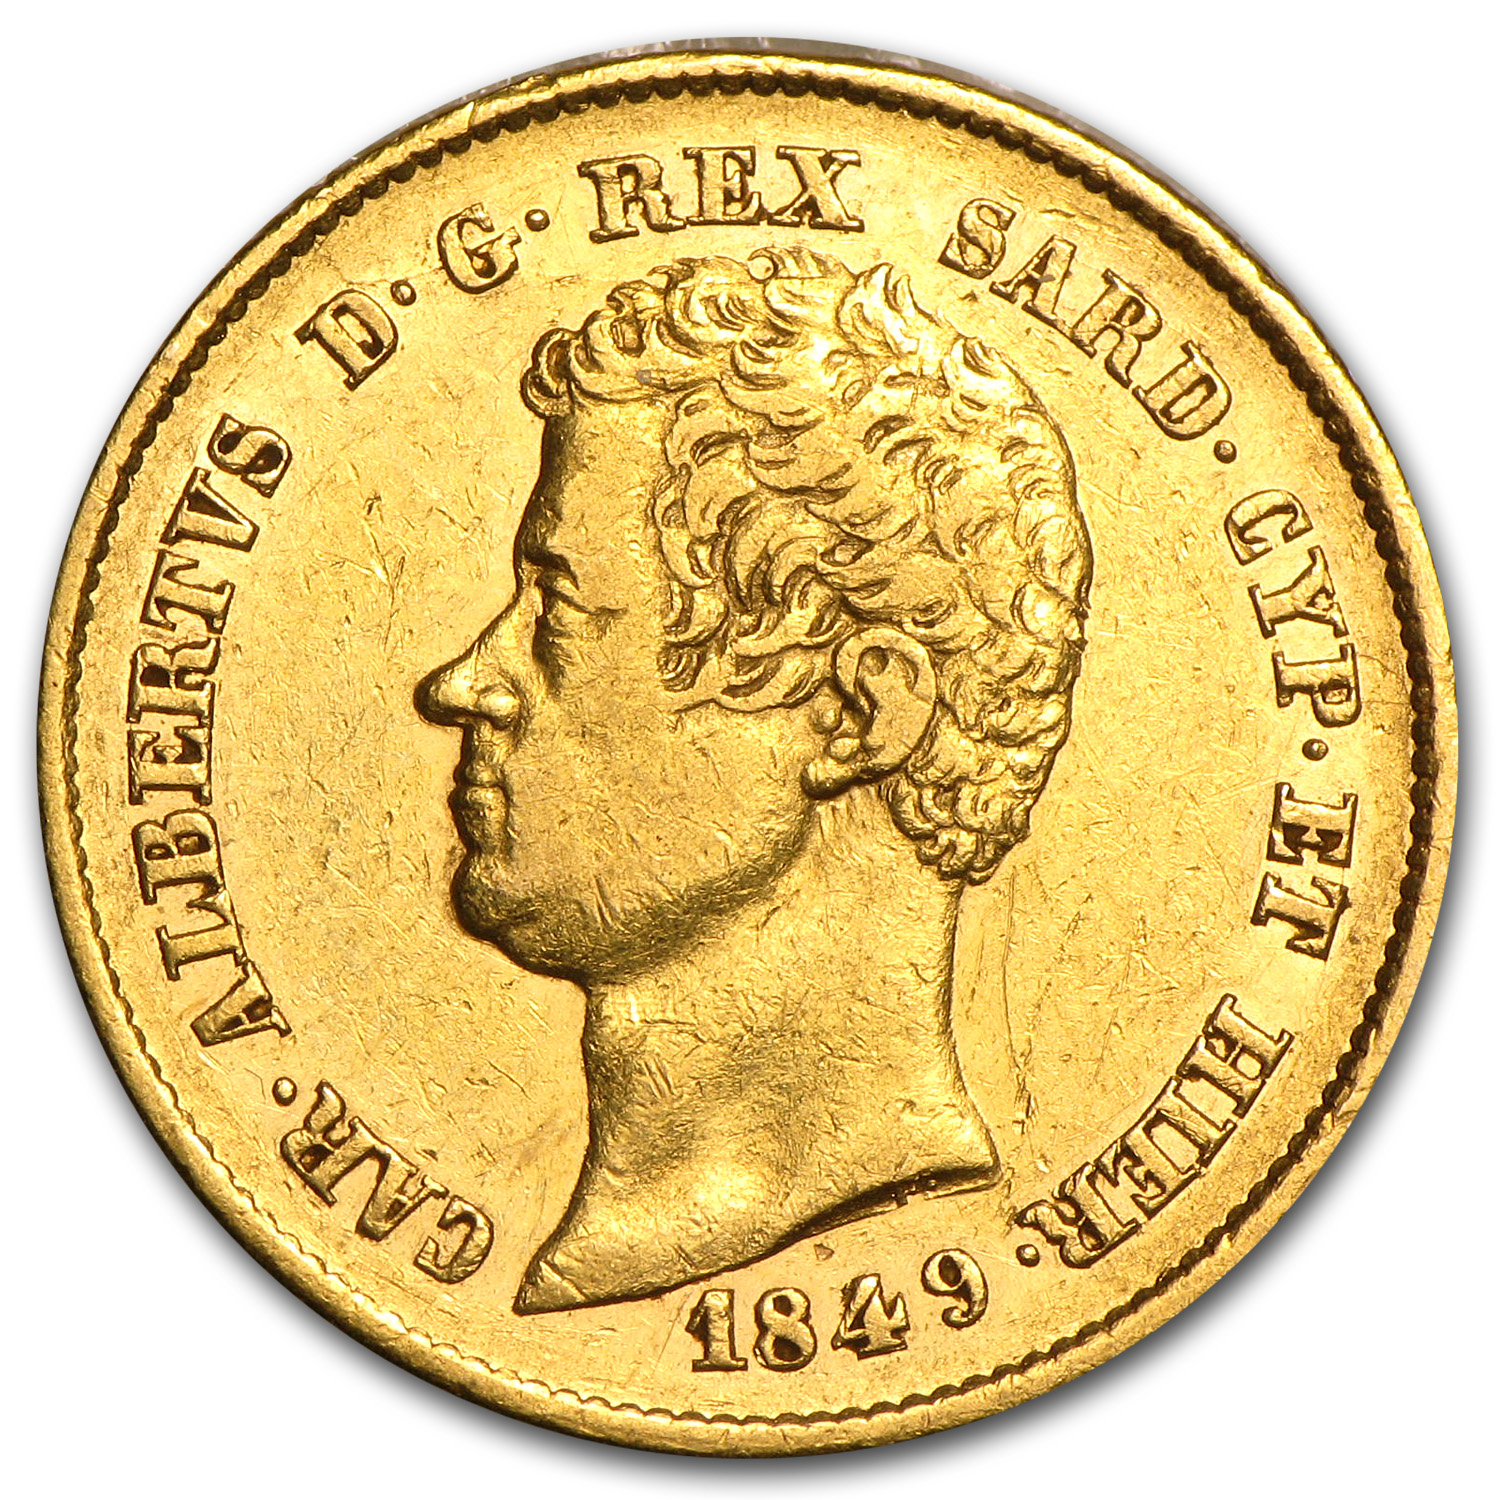 Sardinia Gold 20 Lire XF or Better (AGW .1867, Random)